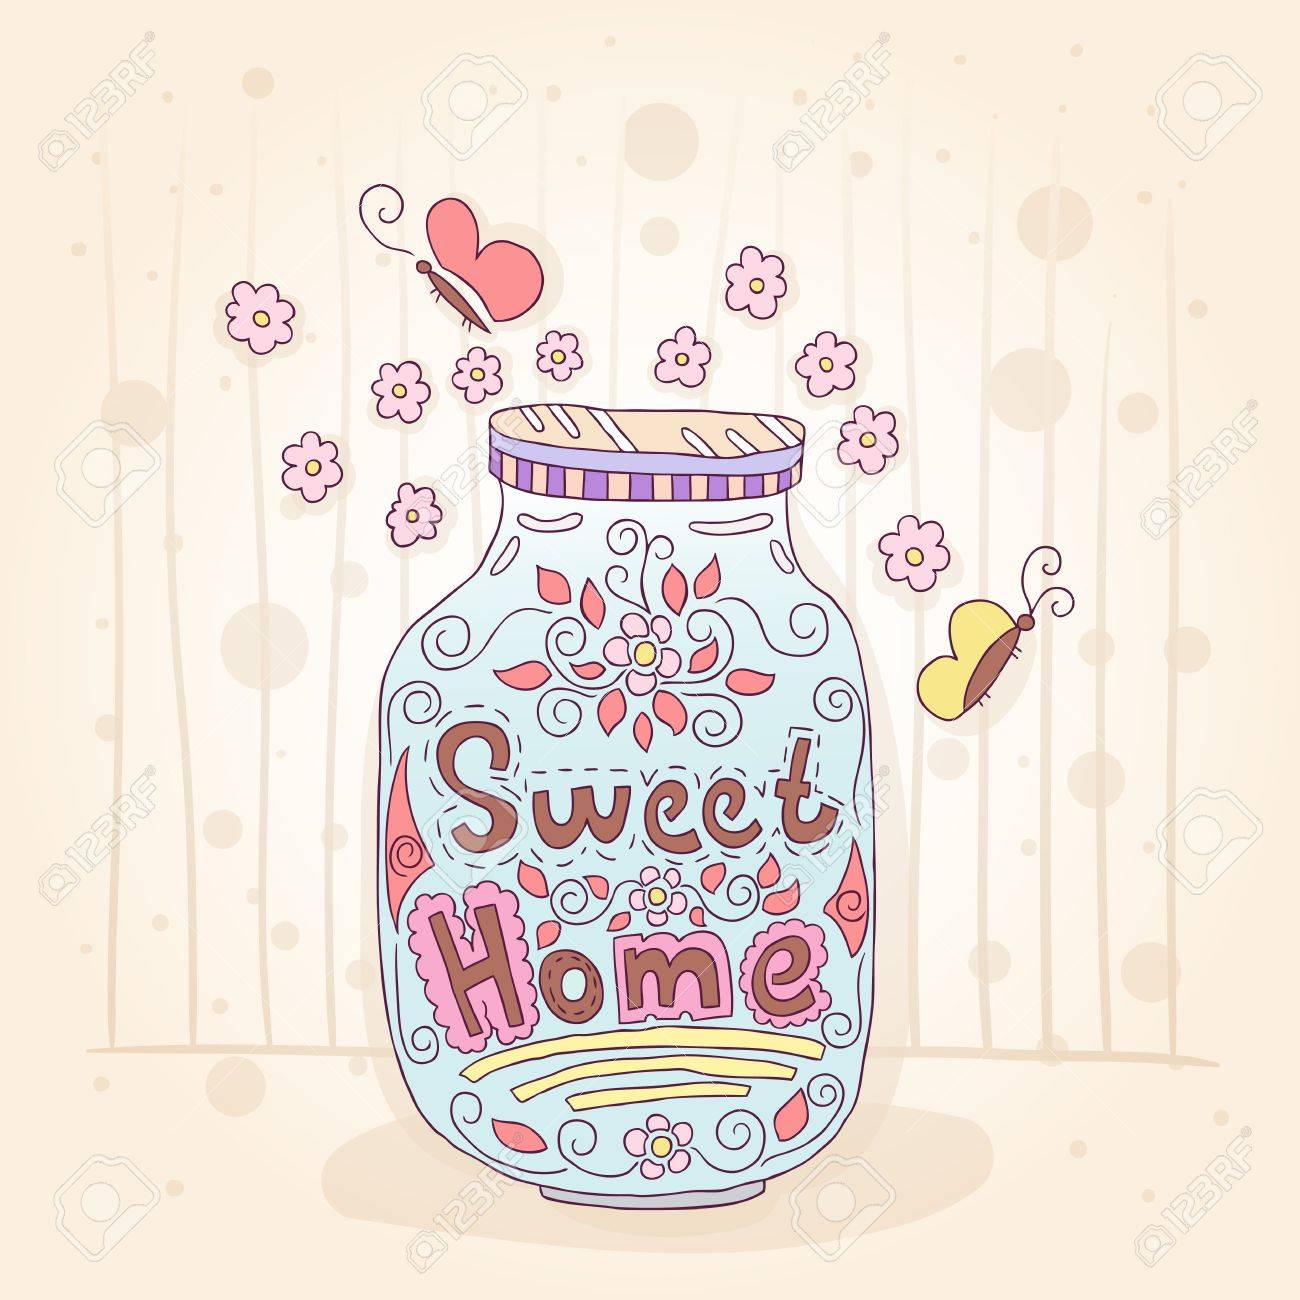 1300x1300 Sweet Home. Bottle With An Inscription. Small Flowers. Gift Card